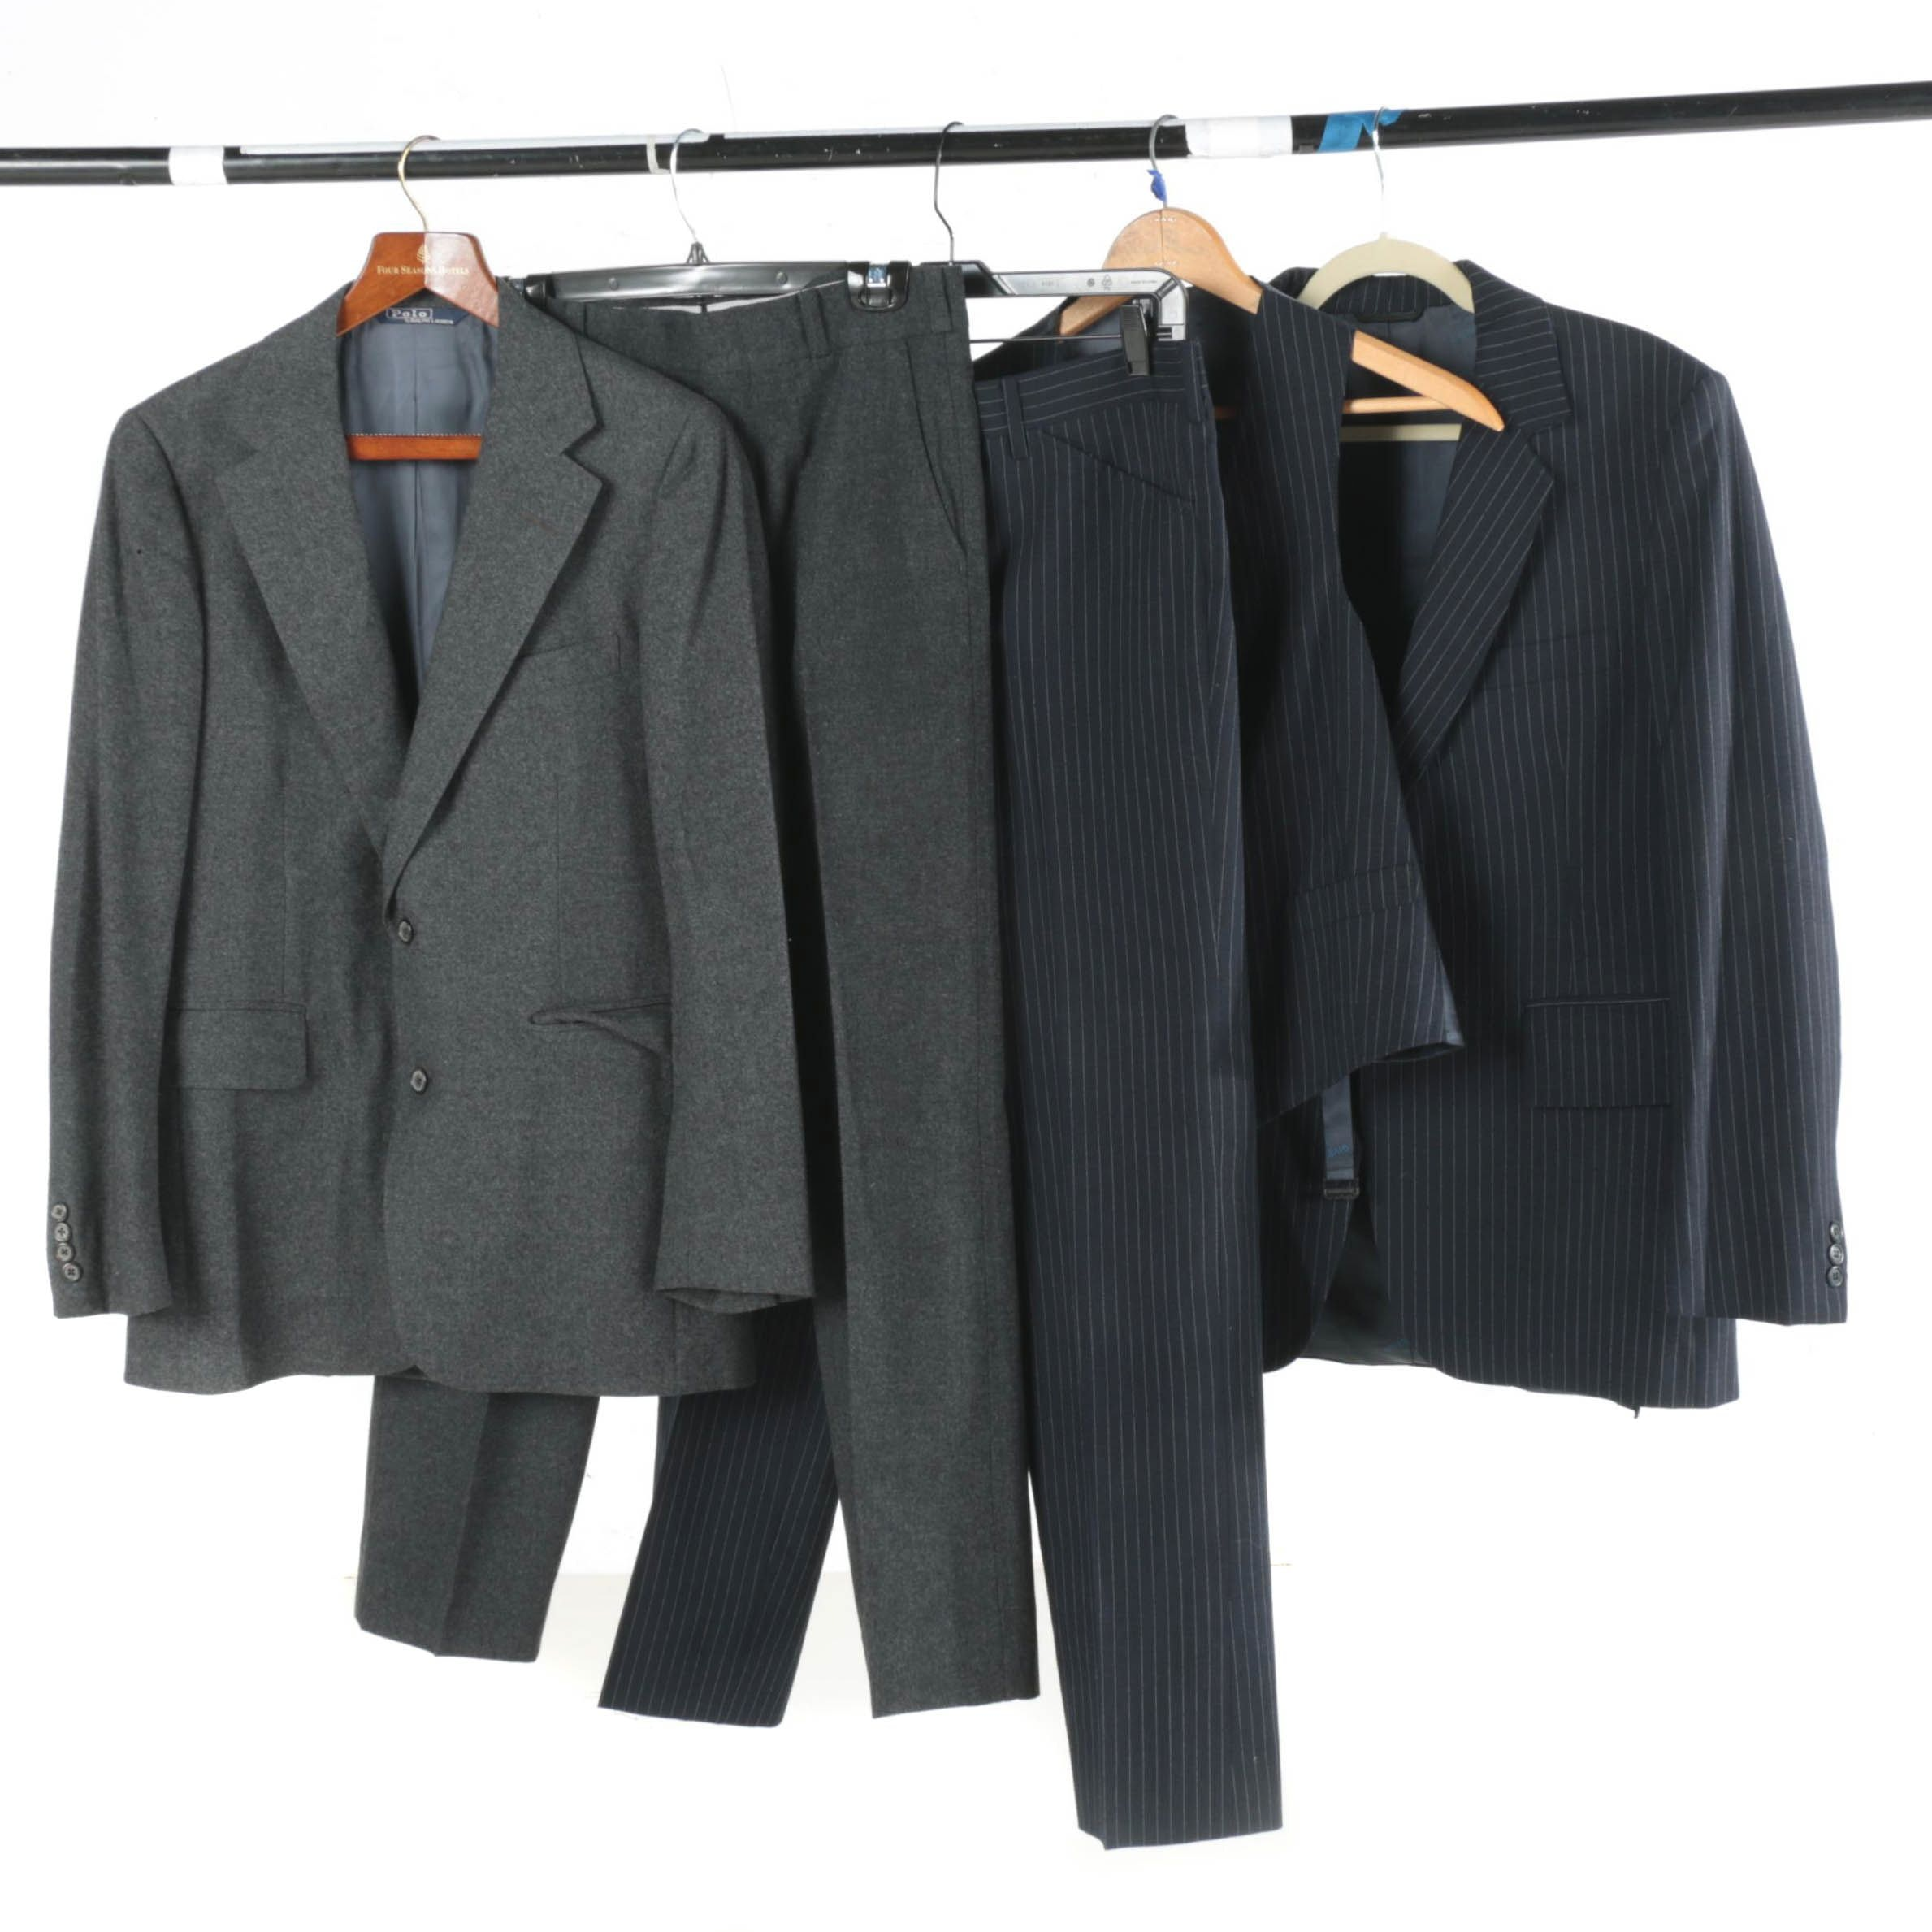 Men's Suits Including Givenchy